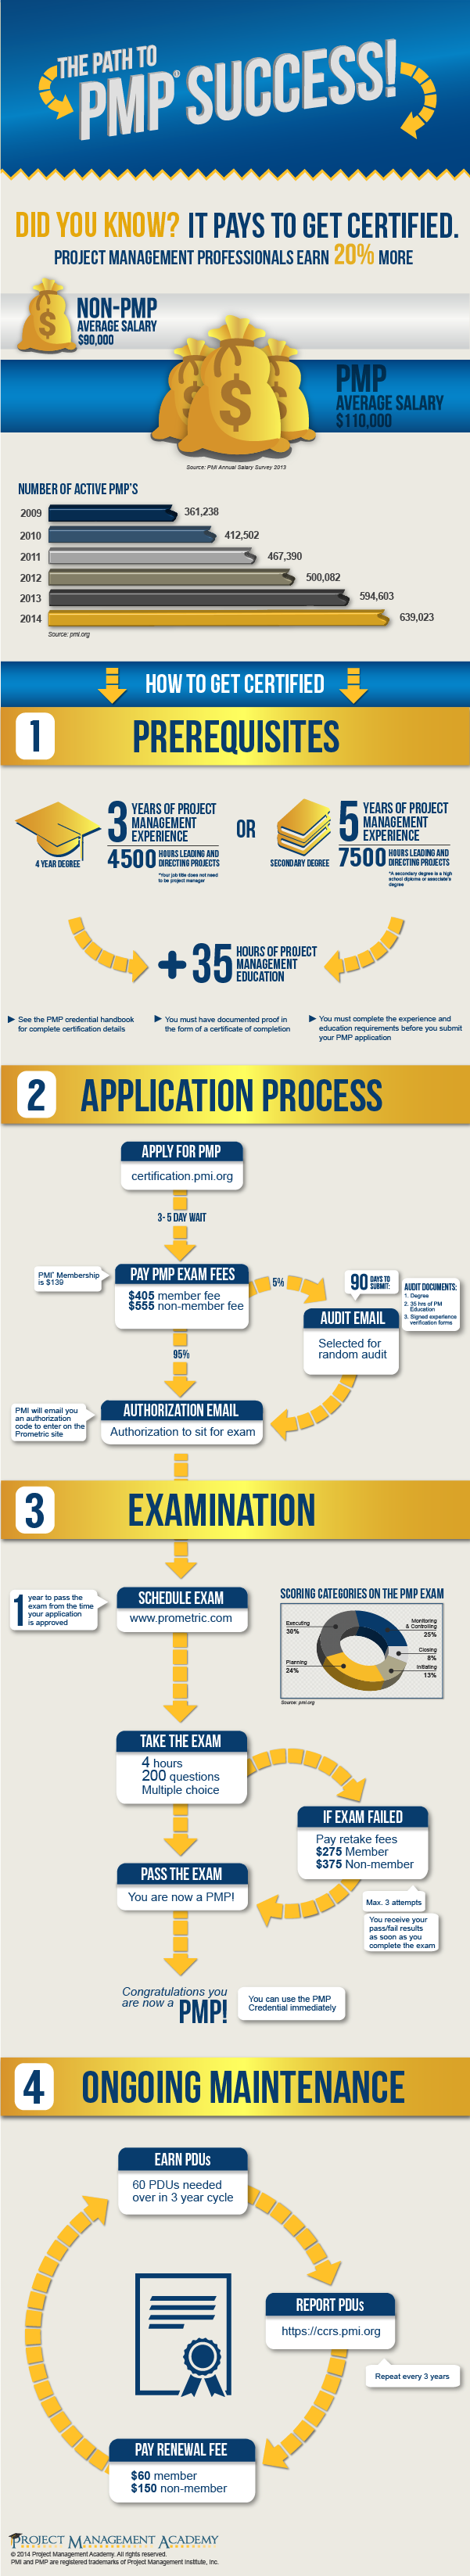 Pmp Certification Process Just Have To Keep My Eyes On The Prize